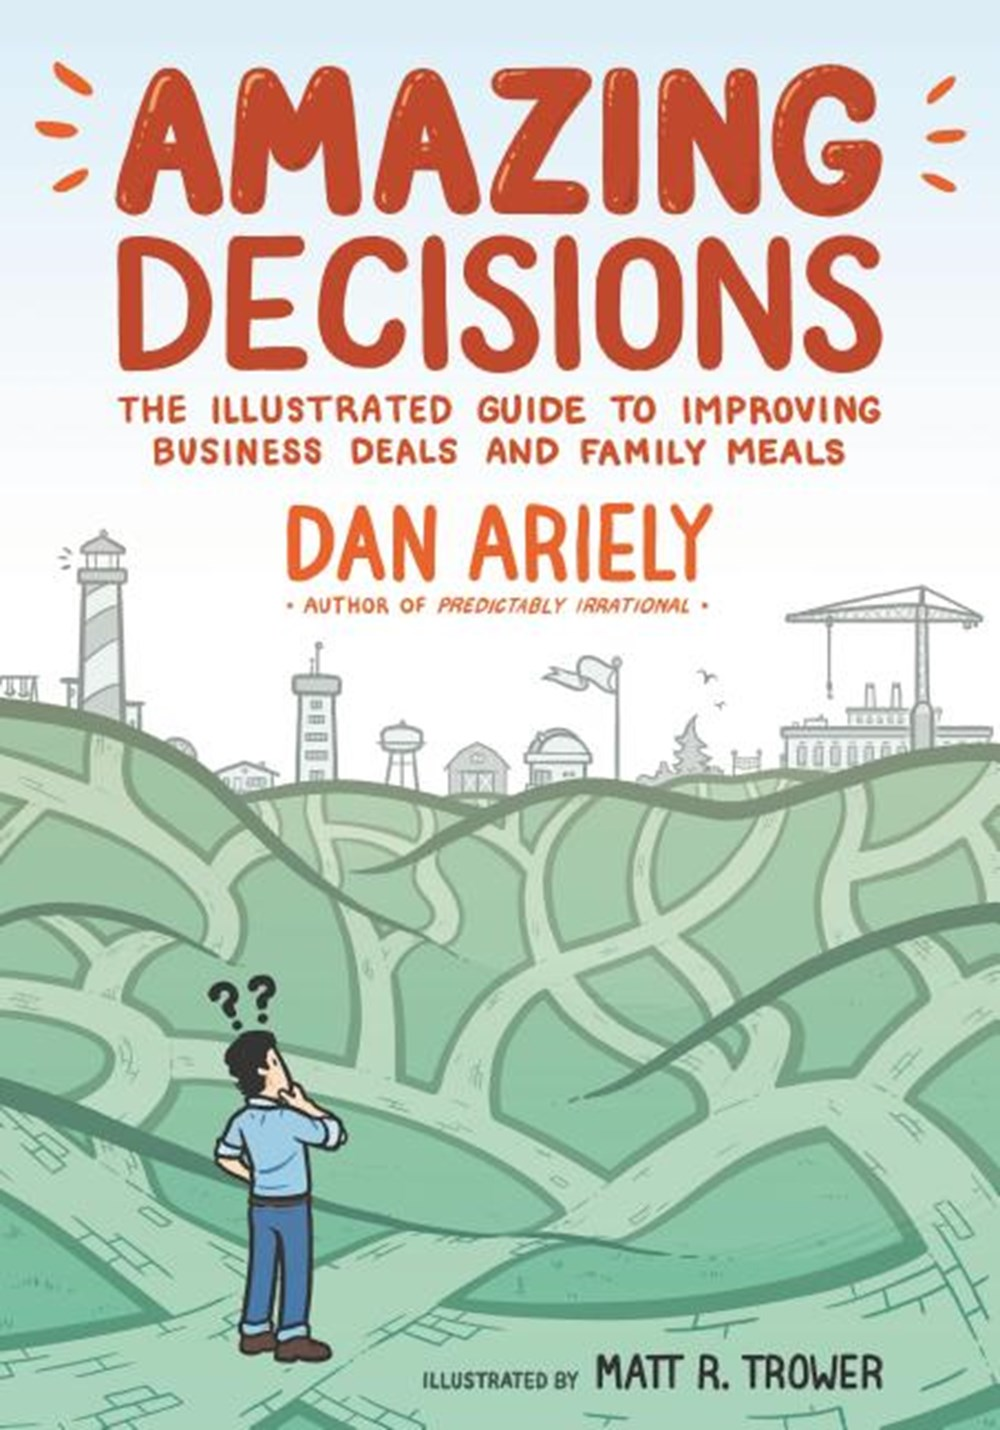 Amazing Decisions The Illustrated Guide to Improving Business Deals and Family Meals